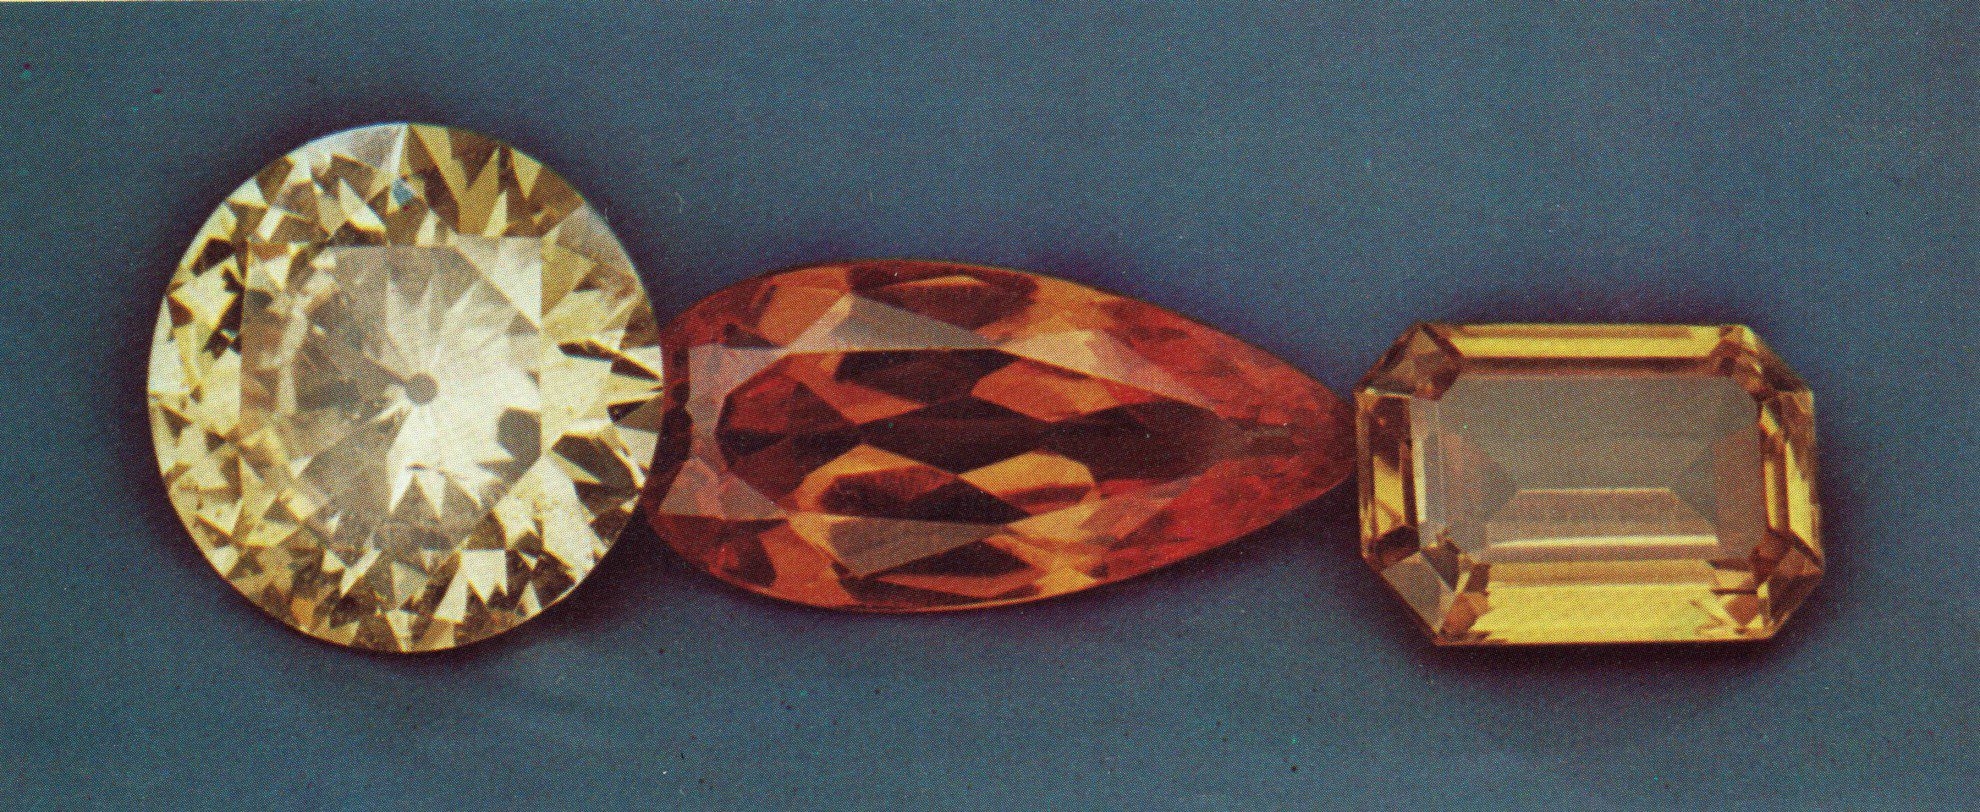 faceted scheelite gems - Korea, Mexico, Arizona